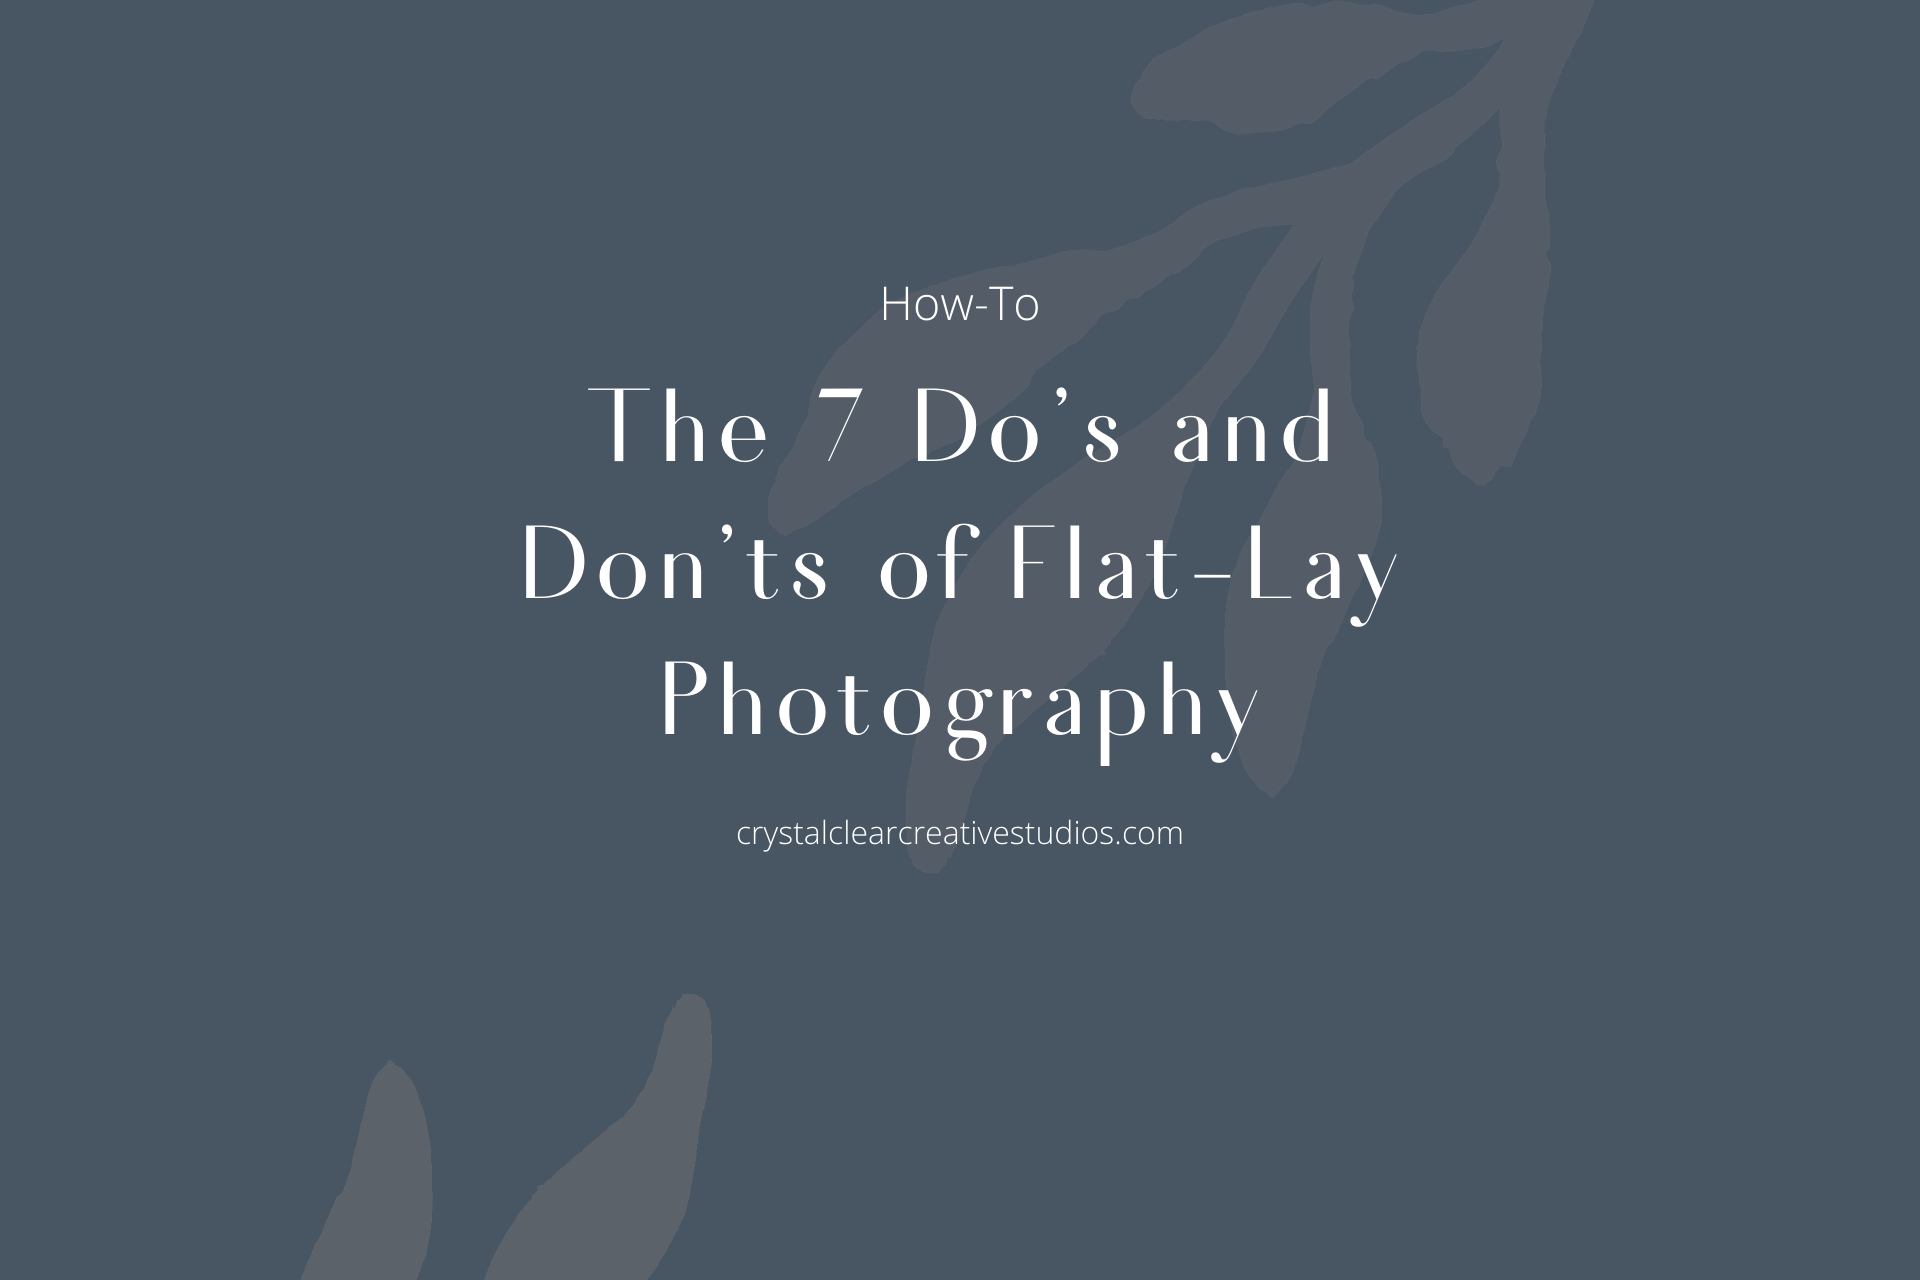 The 7 Do's and Don'ts of Flat-Lay Photography